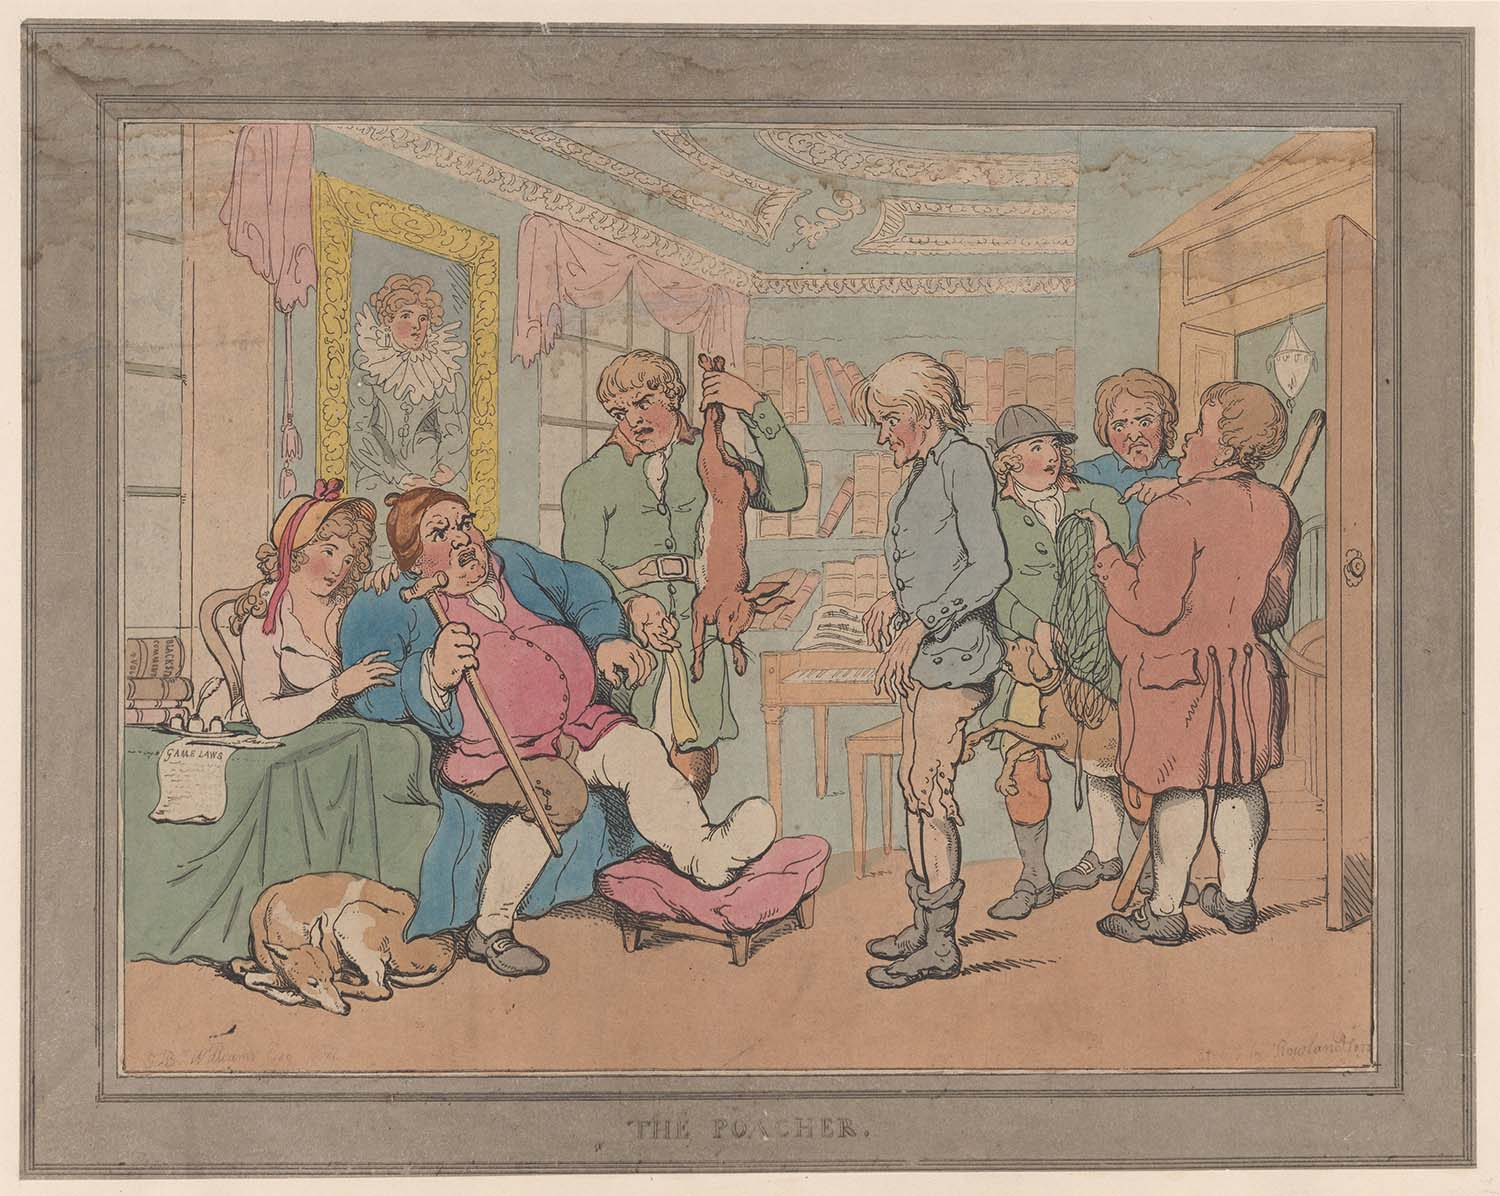 The Poacher, by Thomas Rowlandson, 1806.